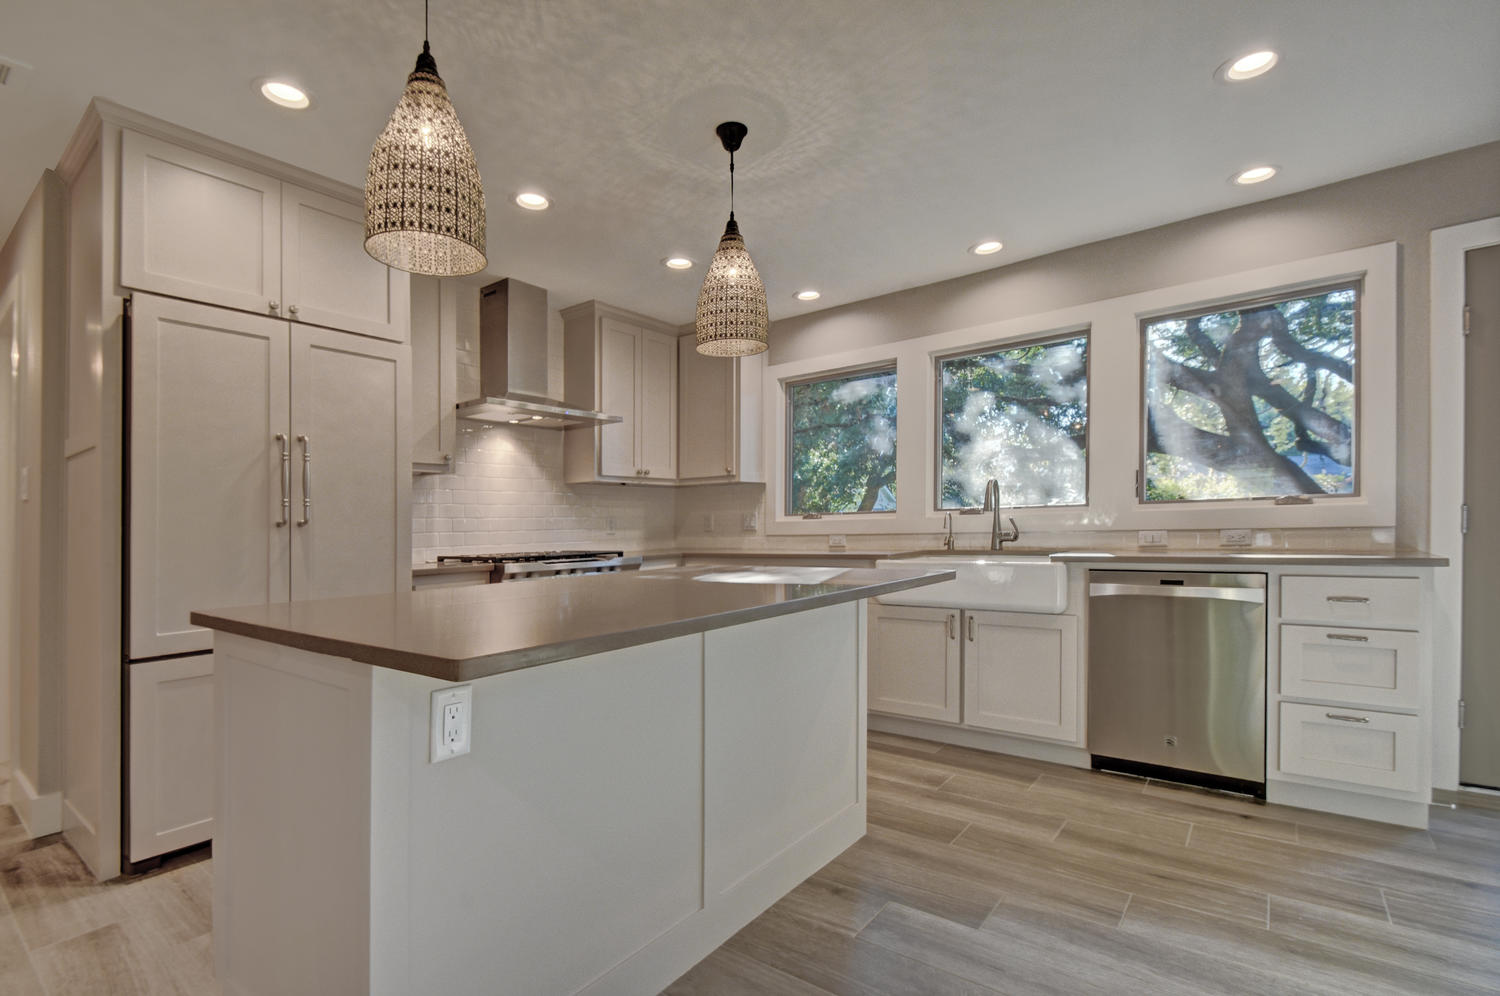 kitchen with windows above cabinets